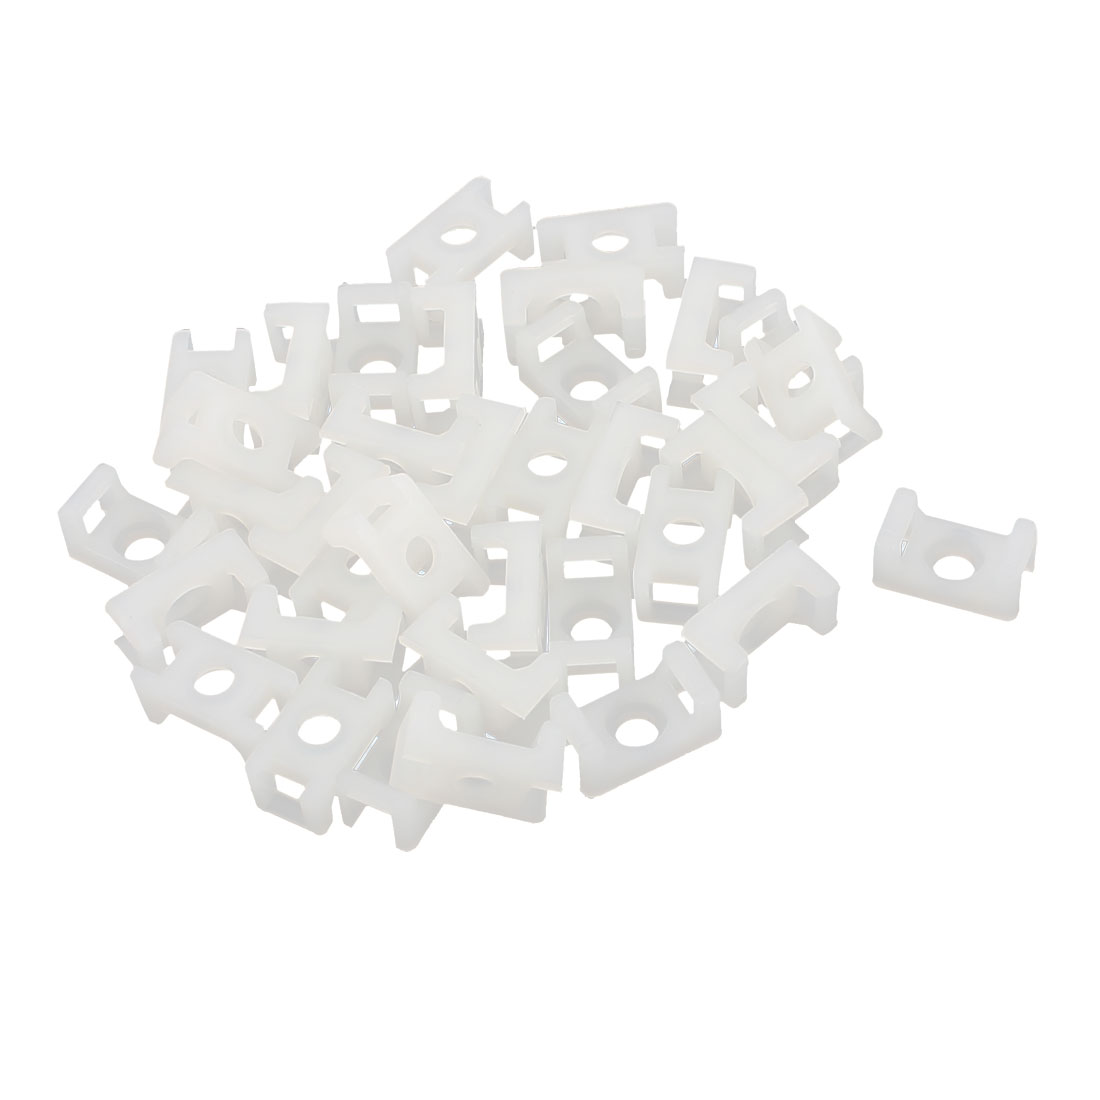 36 Pcs STM-0 12.6 x 7 x 6mm Cable Tie Mount Wire Saddle Type Plastic Holder